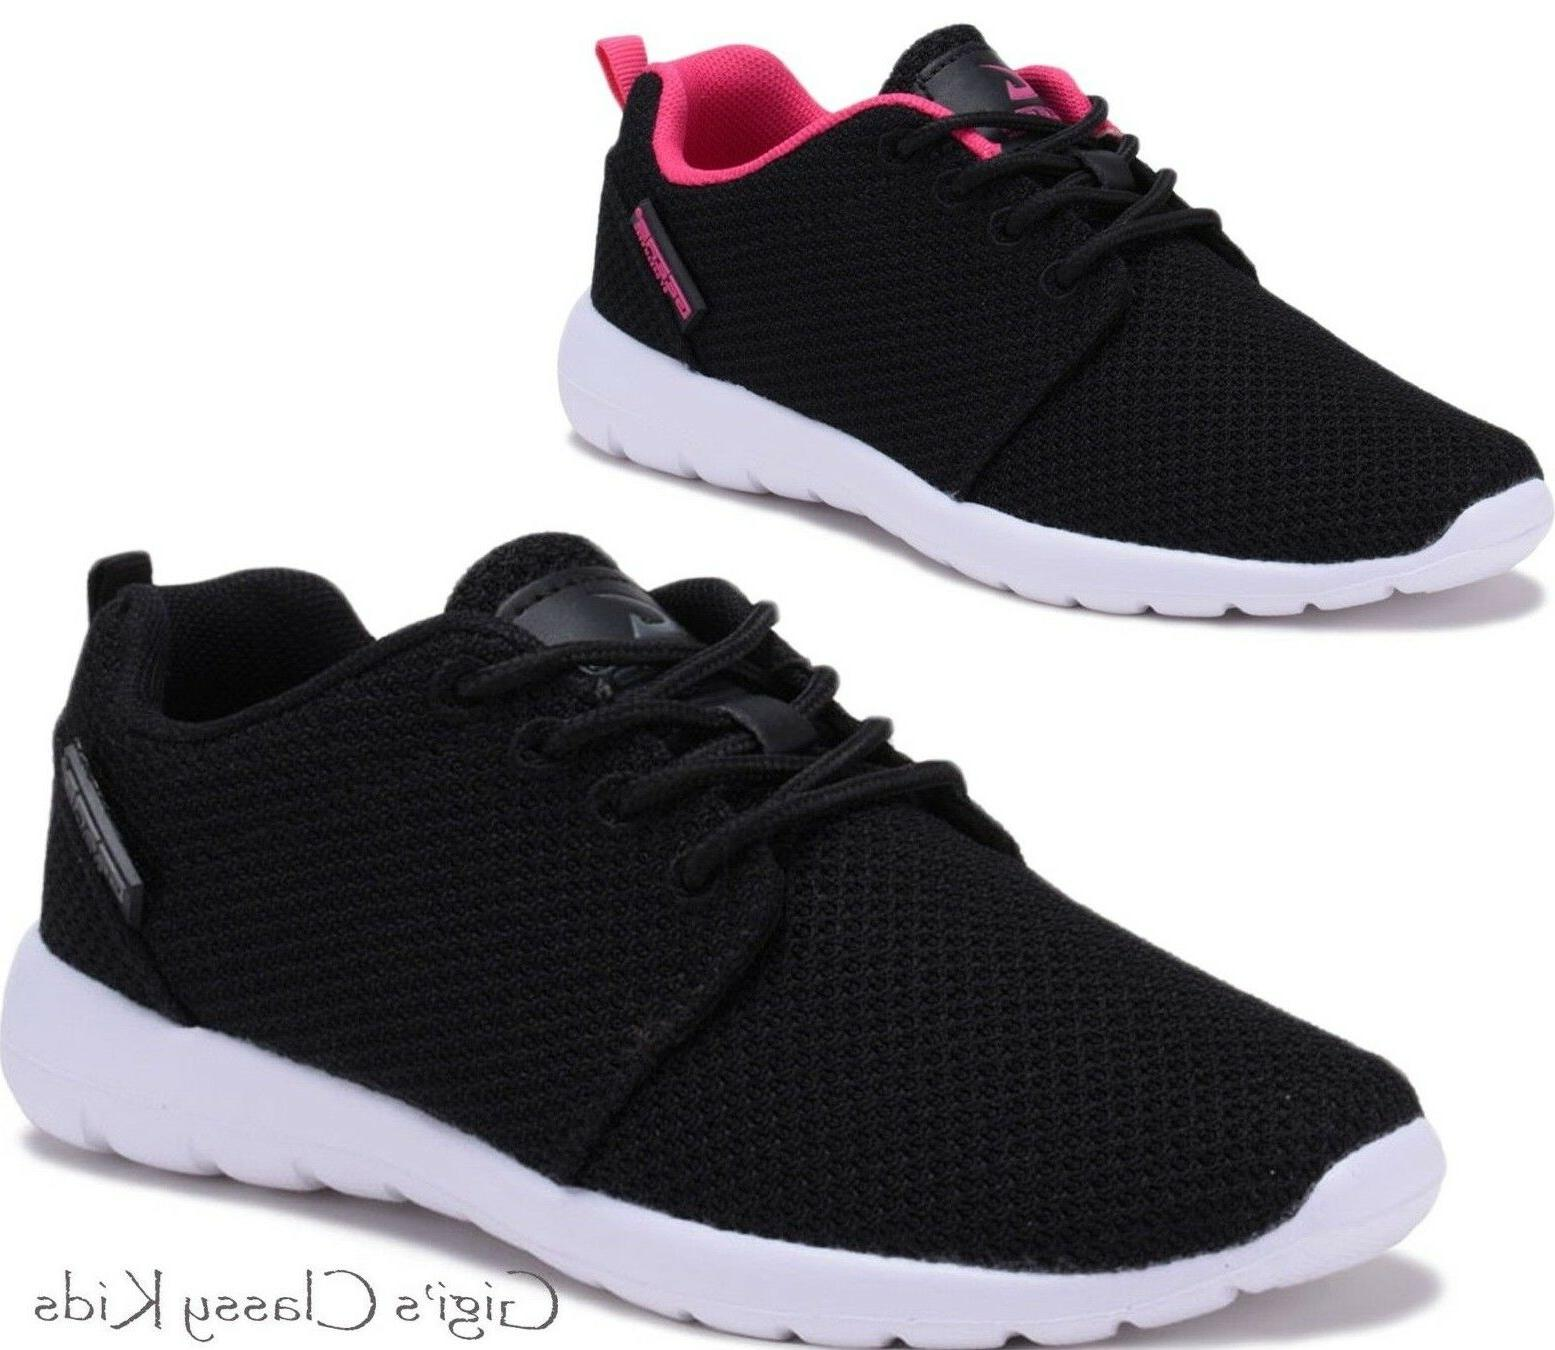 New Boys Girls Knit Tennis Shoes Breathable Running Sneakers